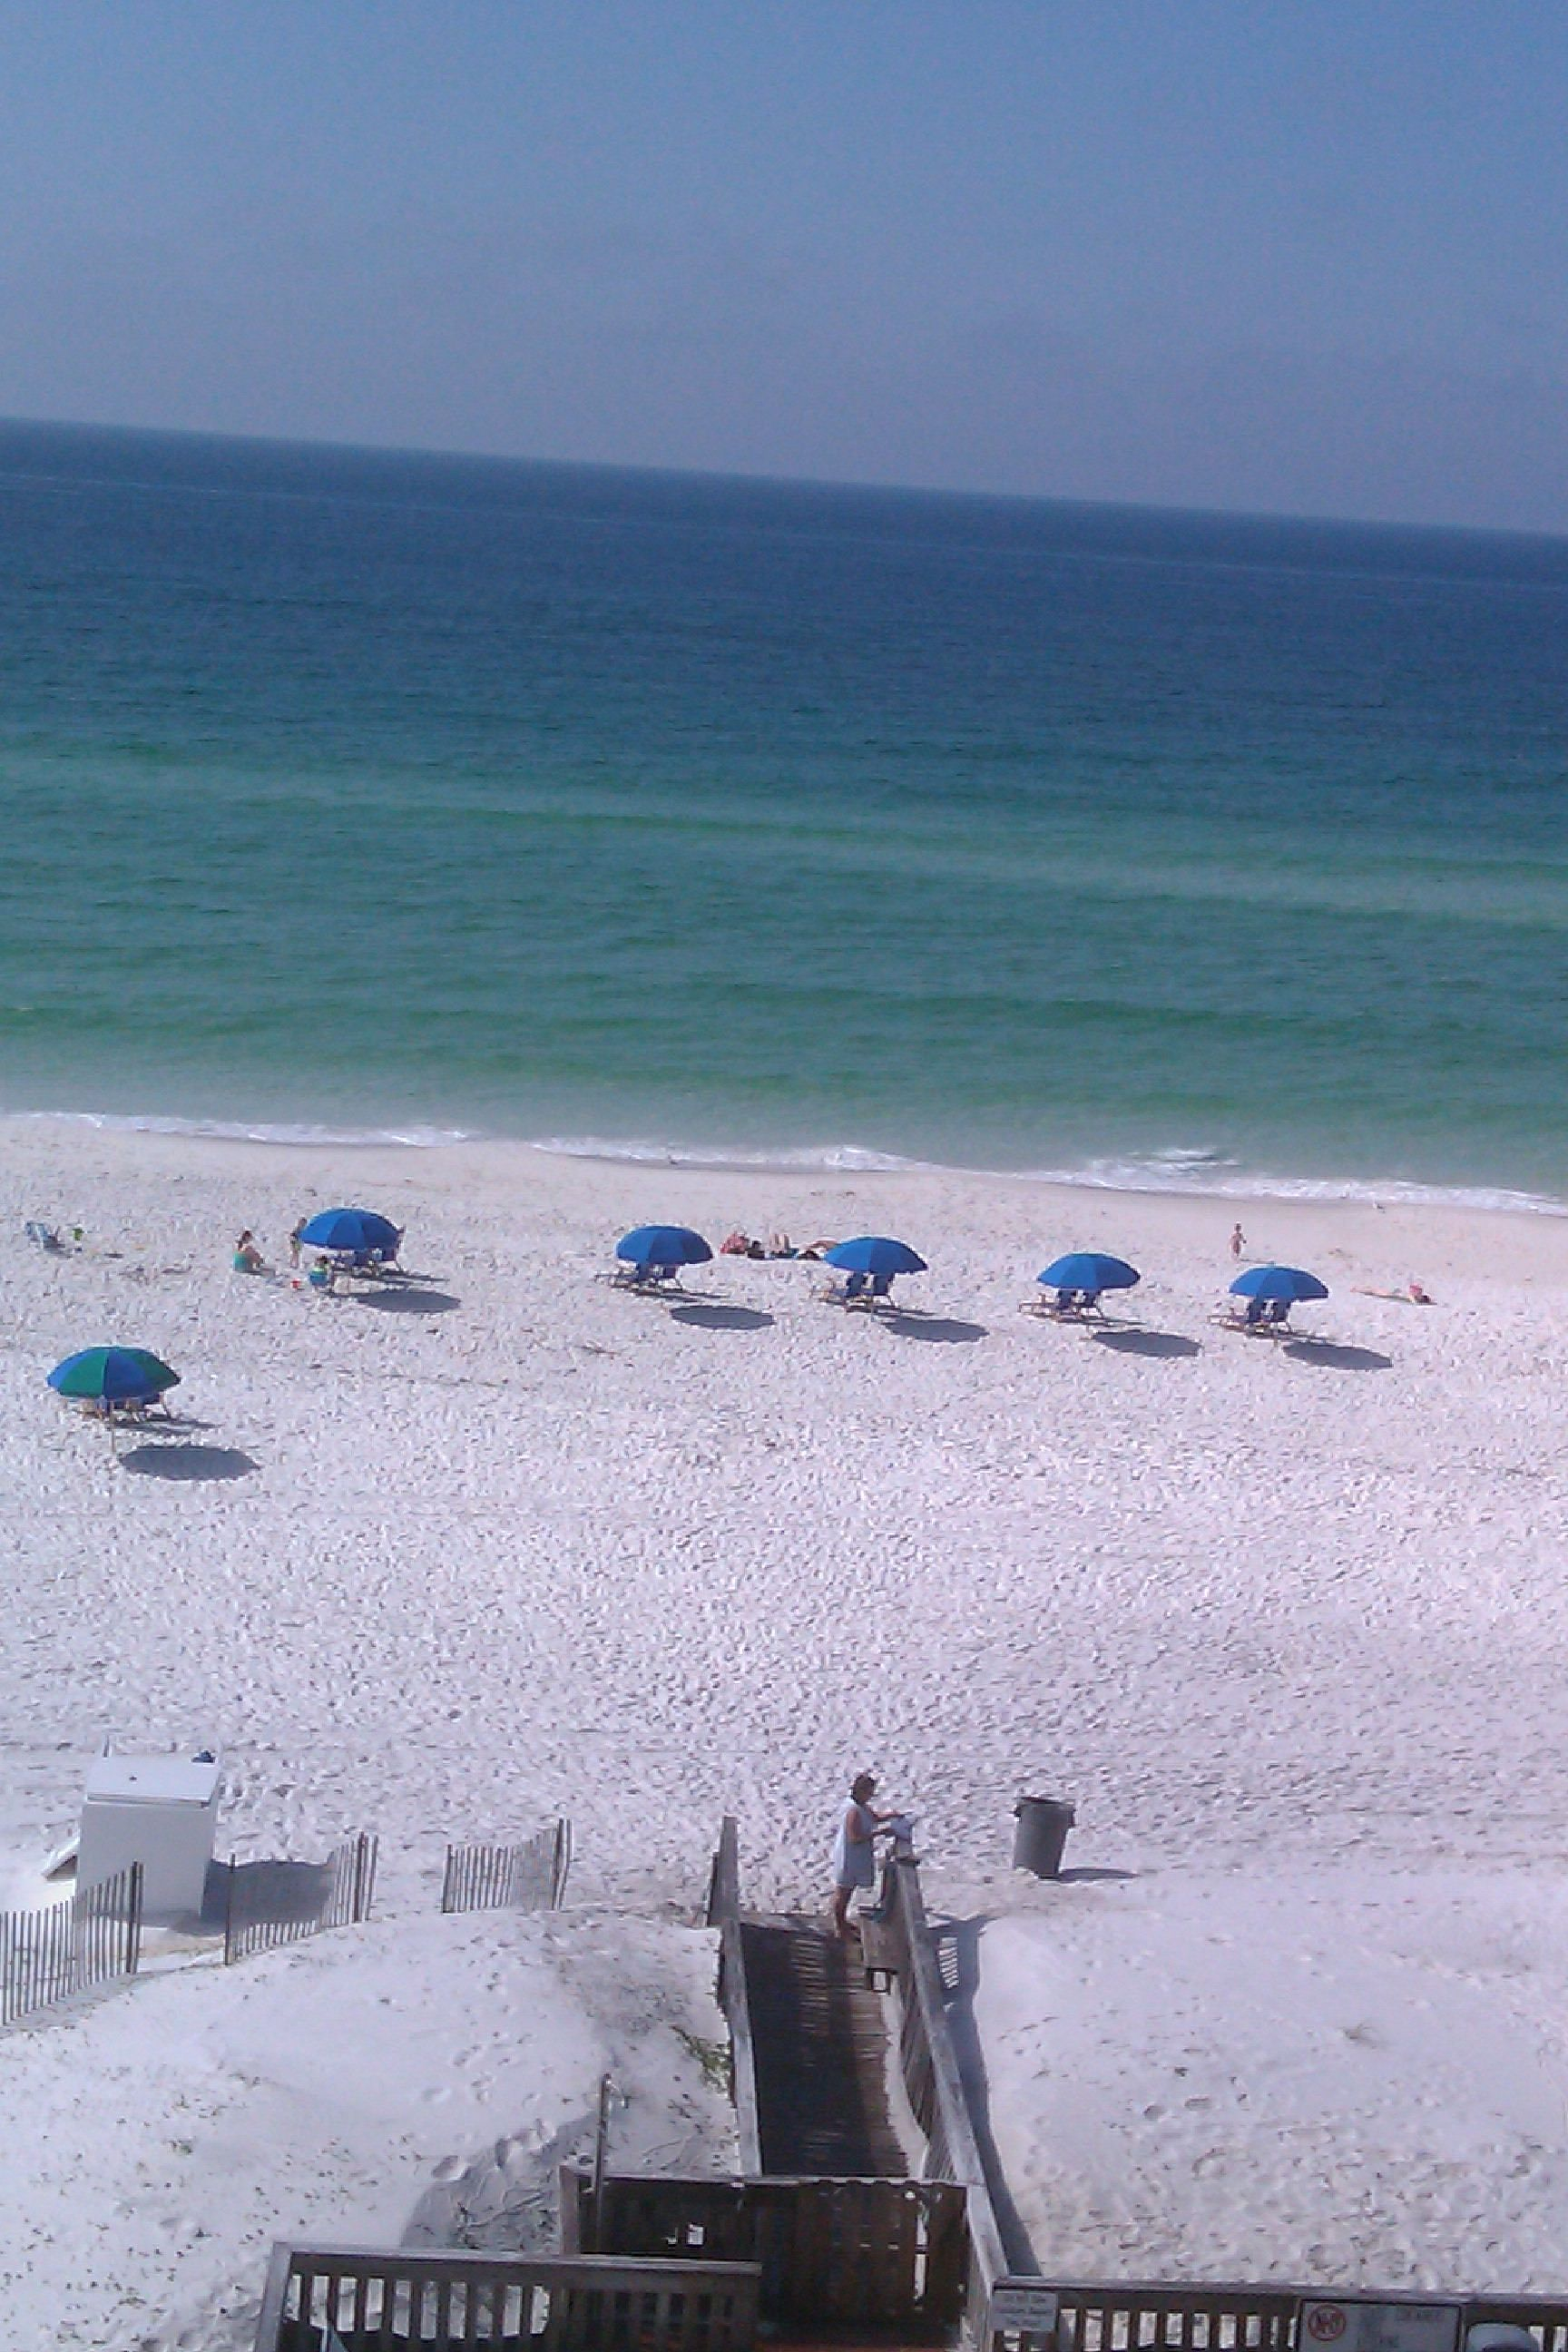 Craigslist Fort Walton Beach >> Fort Walton Beach FL Attractions Images - Frompo